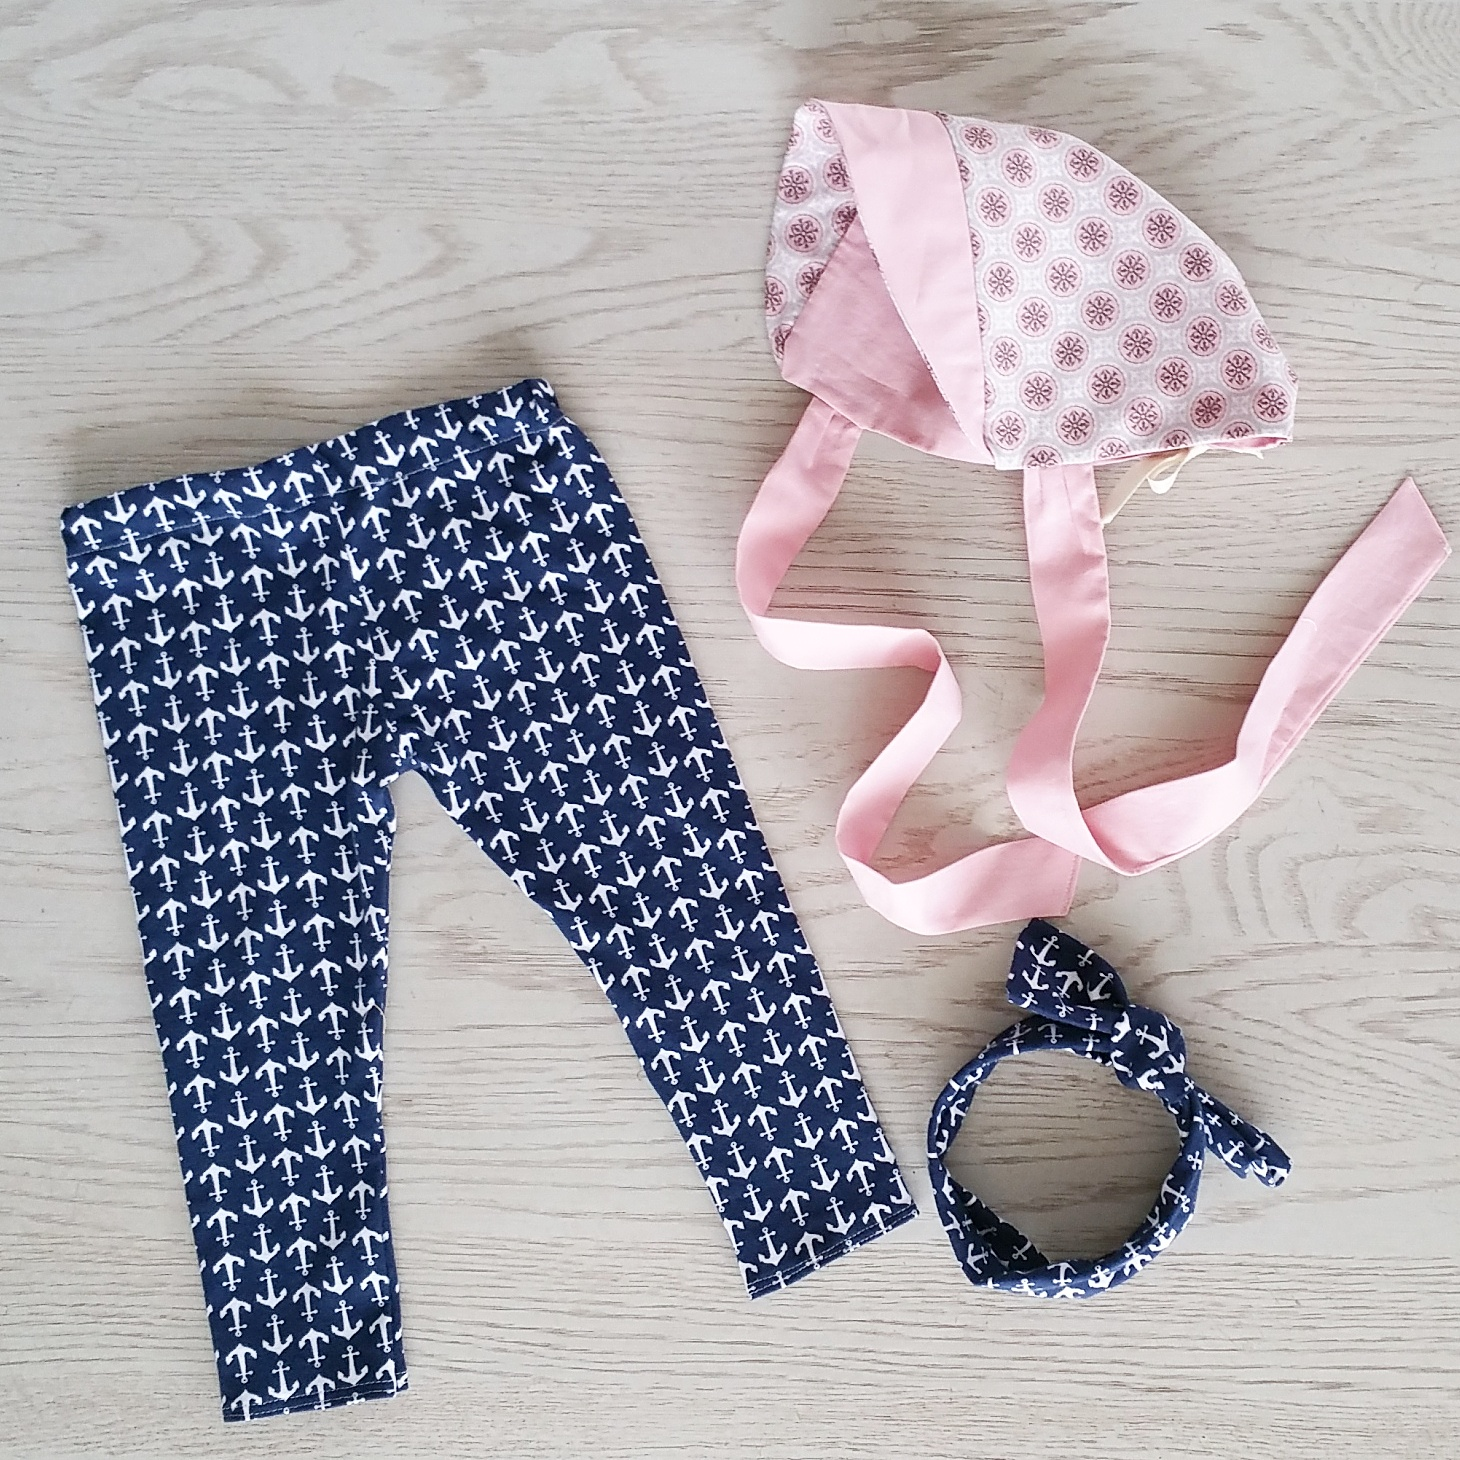 For Everly Yours Saskatoon baby clothes